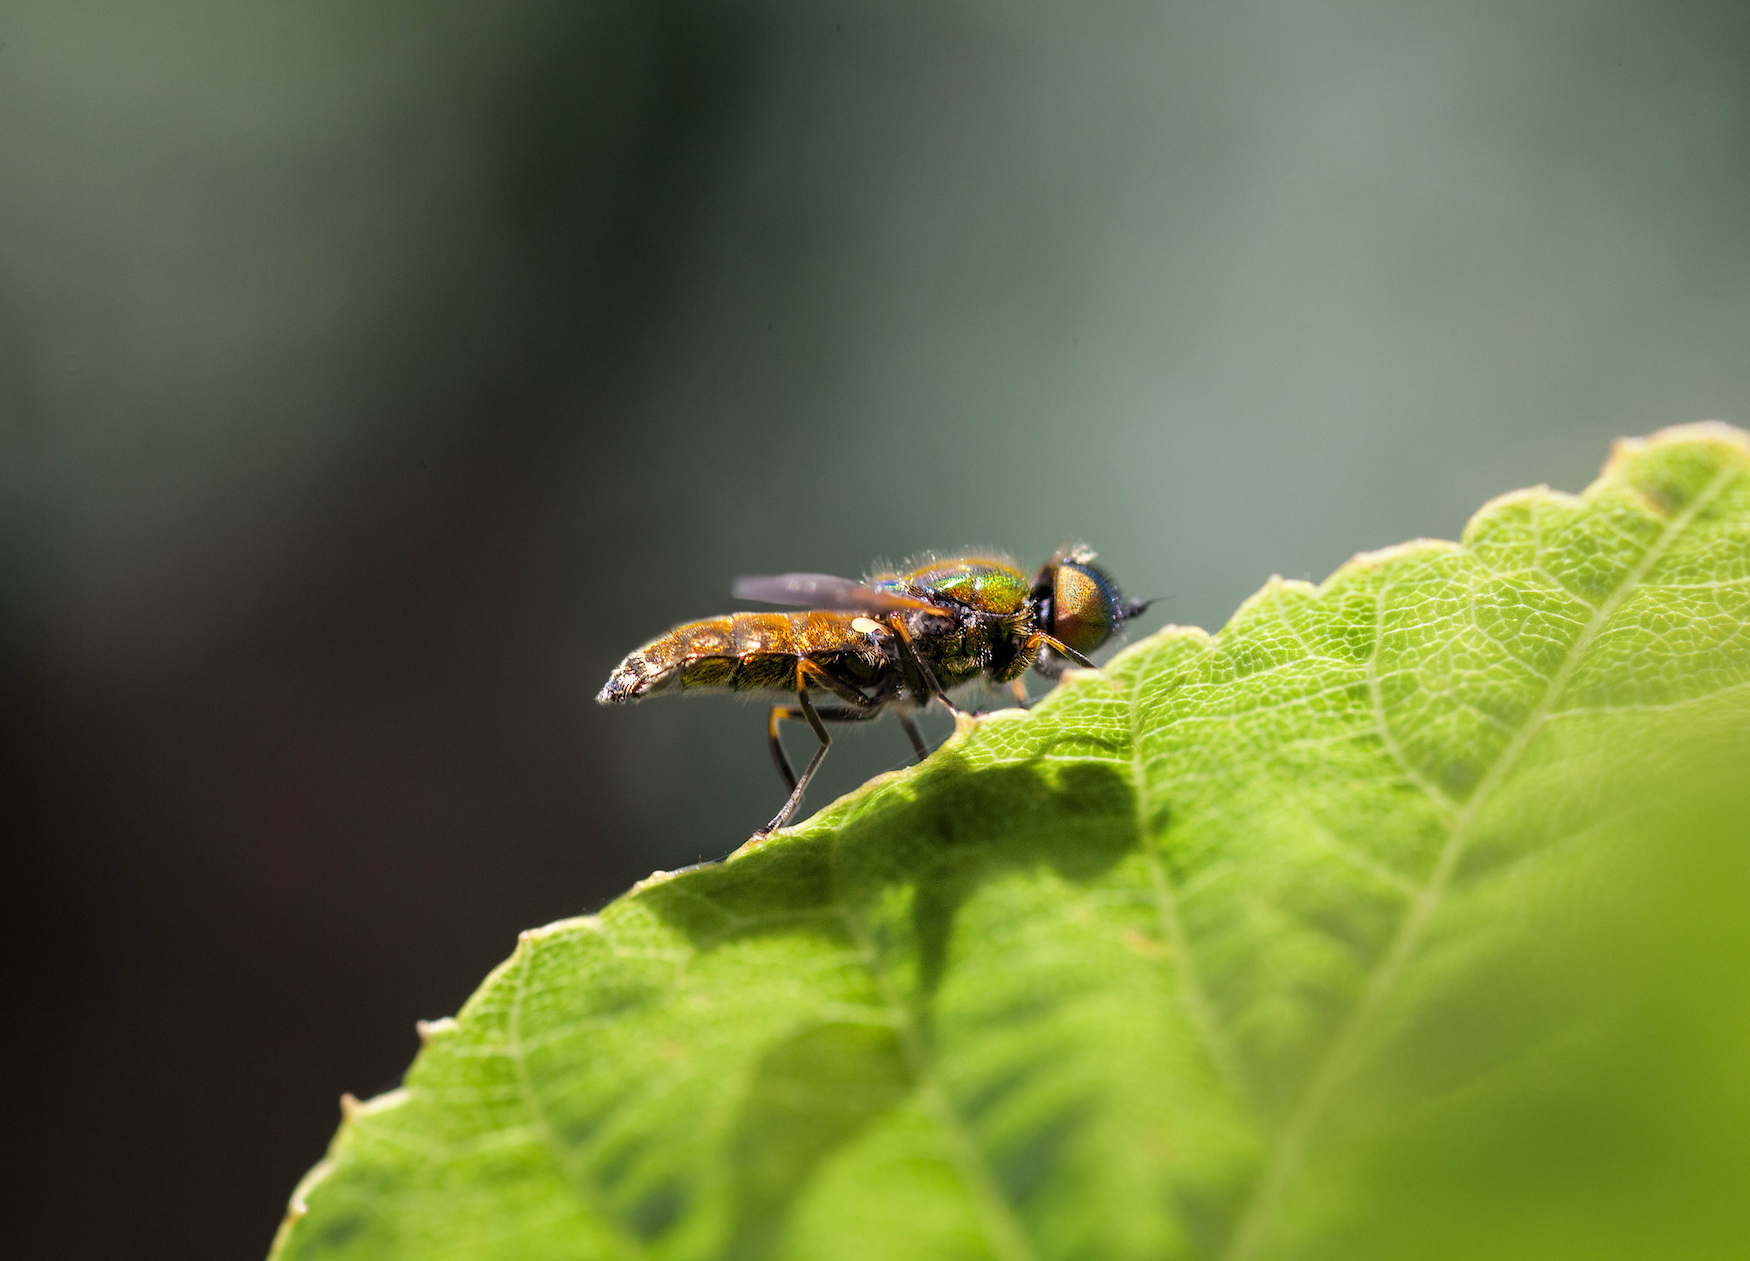 The Colourful Hoverfly